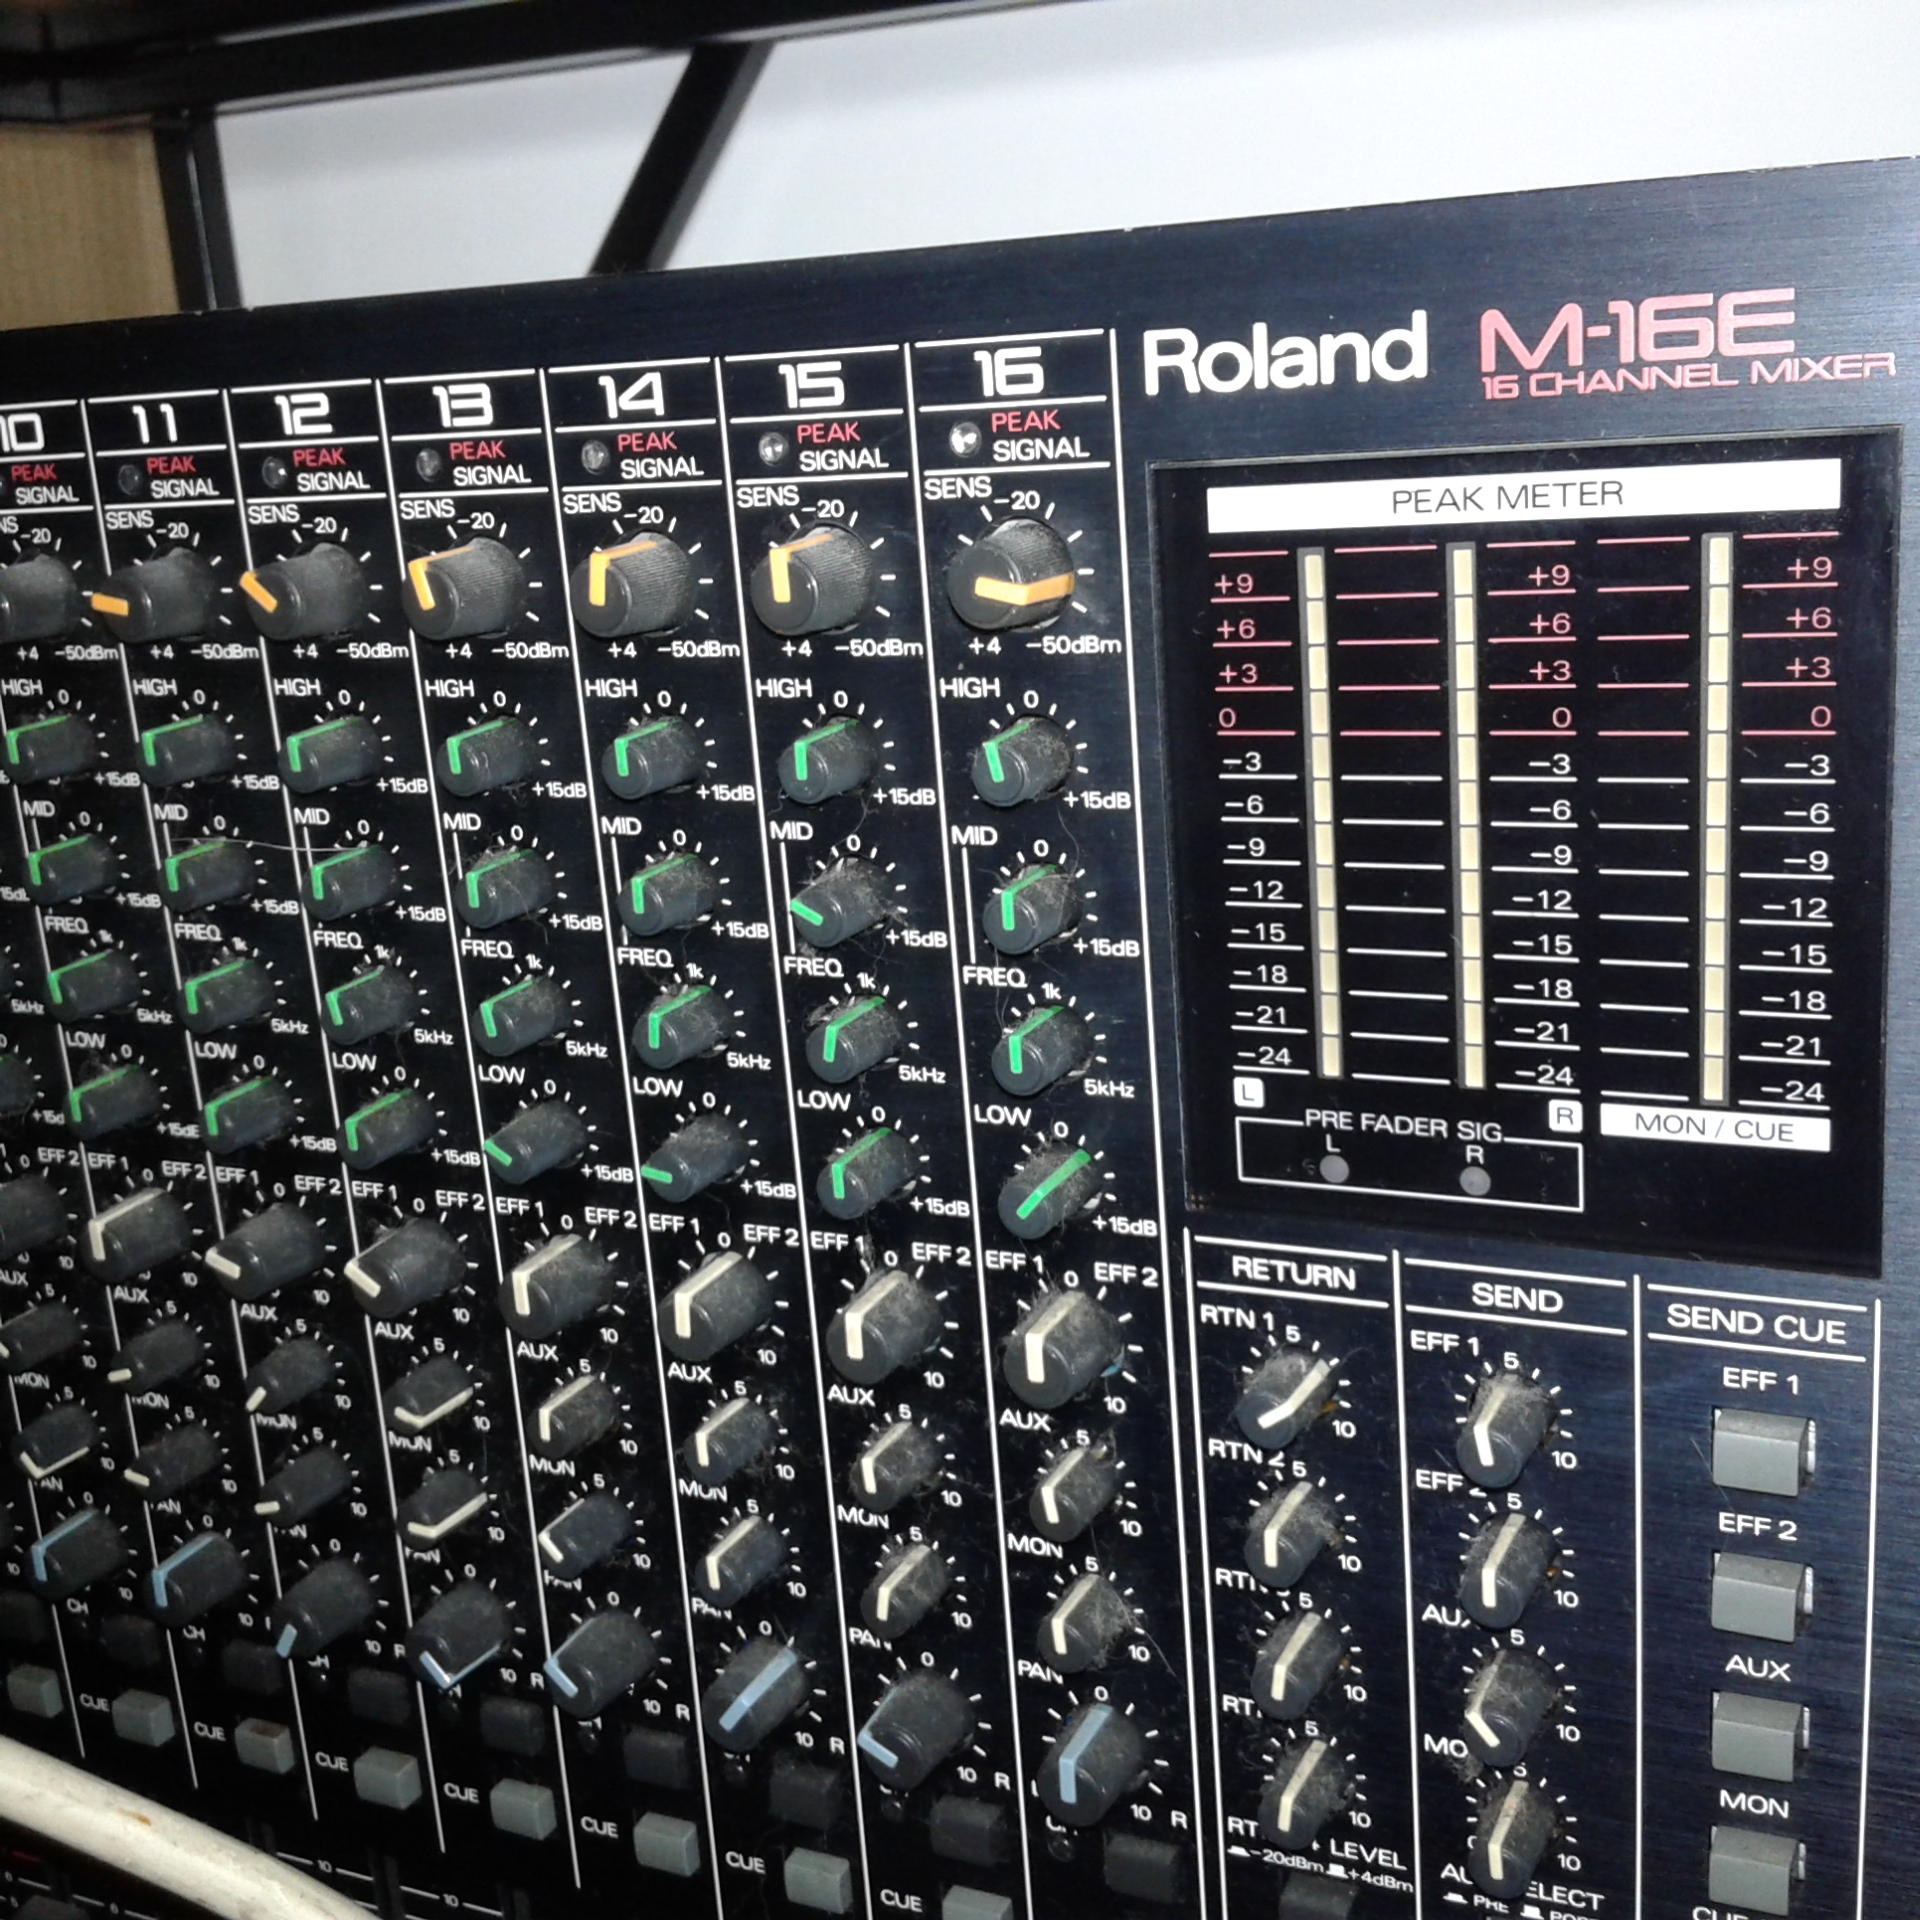 table de mixage roland m-16e